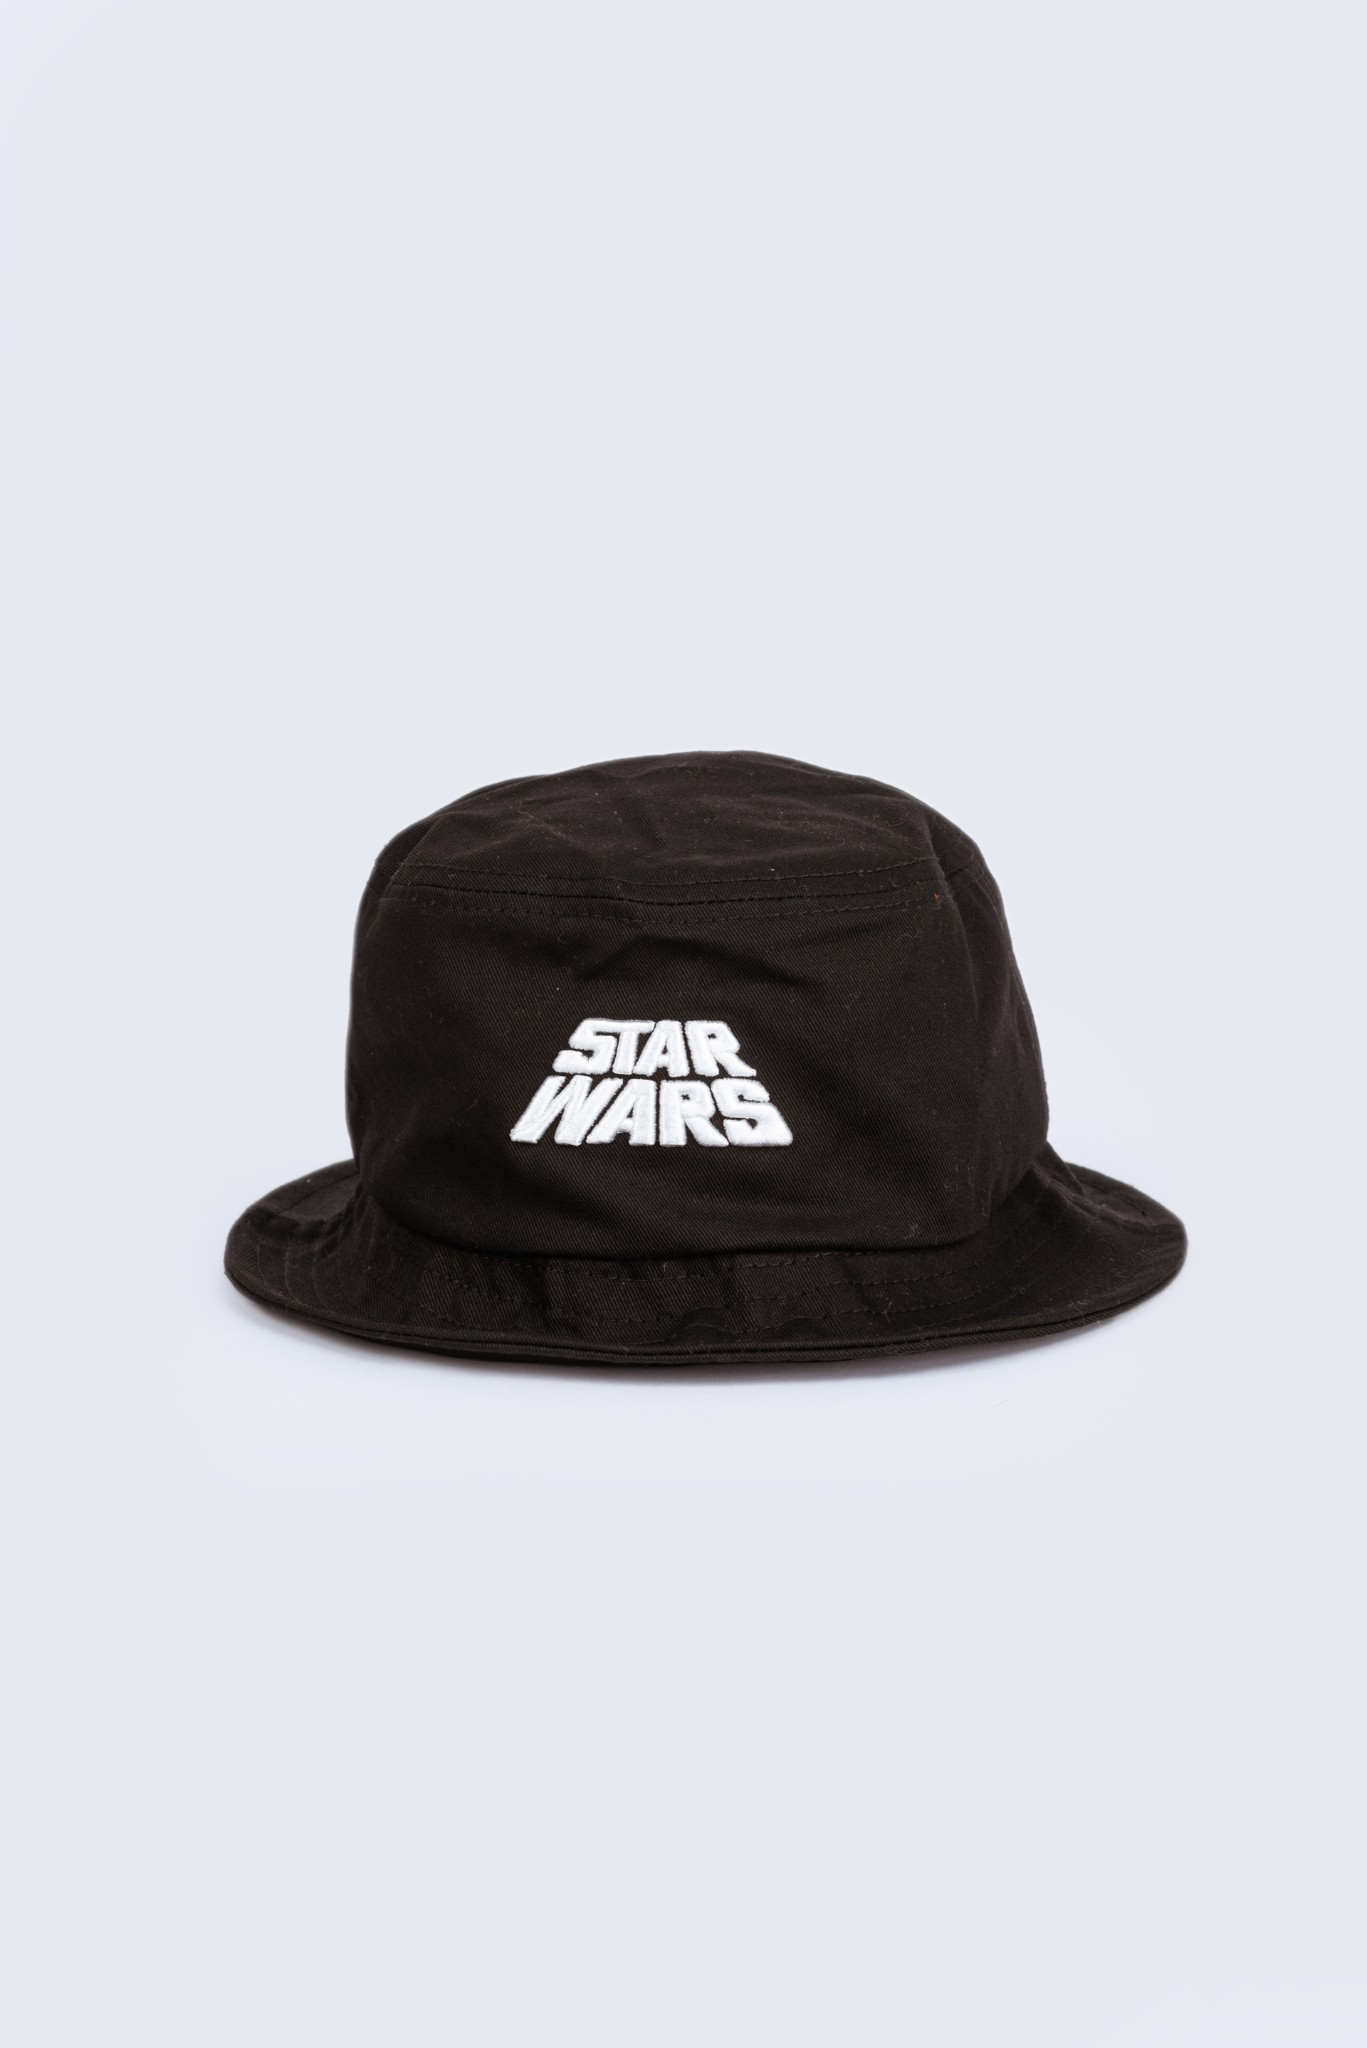 MŨ BUCKET THÊU STAR WARS